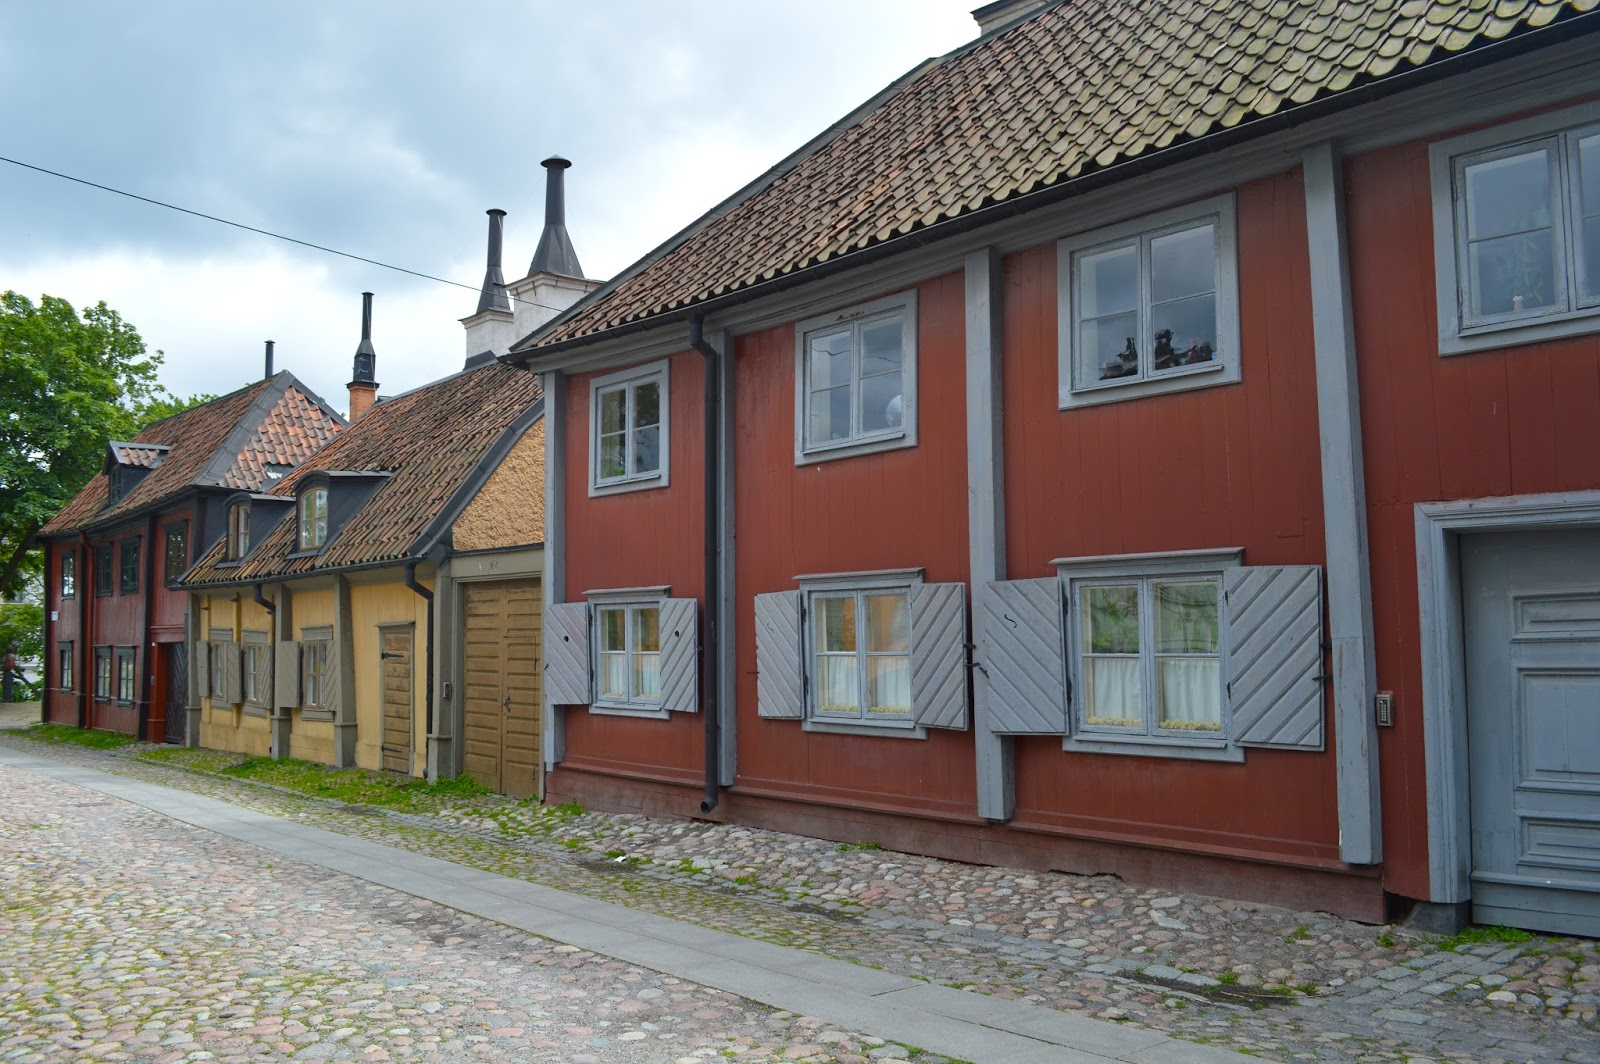 Picturesque Swedish colourful houses in Sodermalm, Stockholm